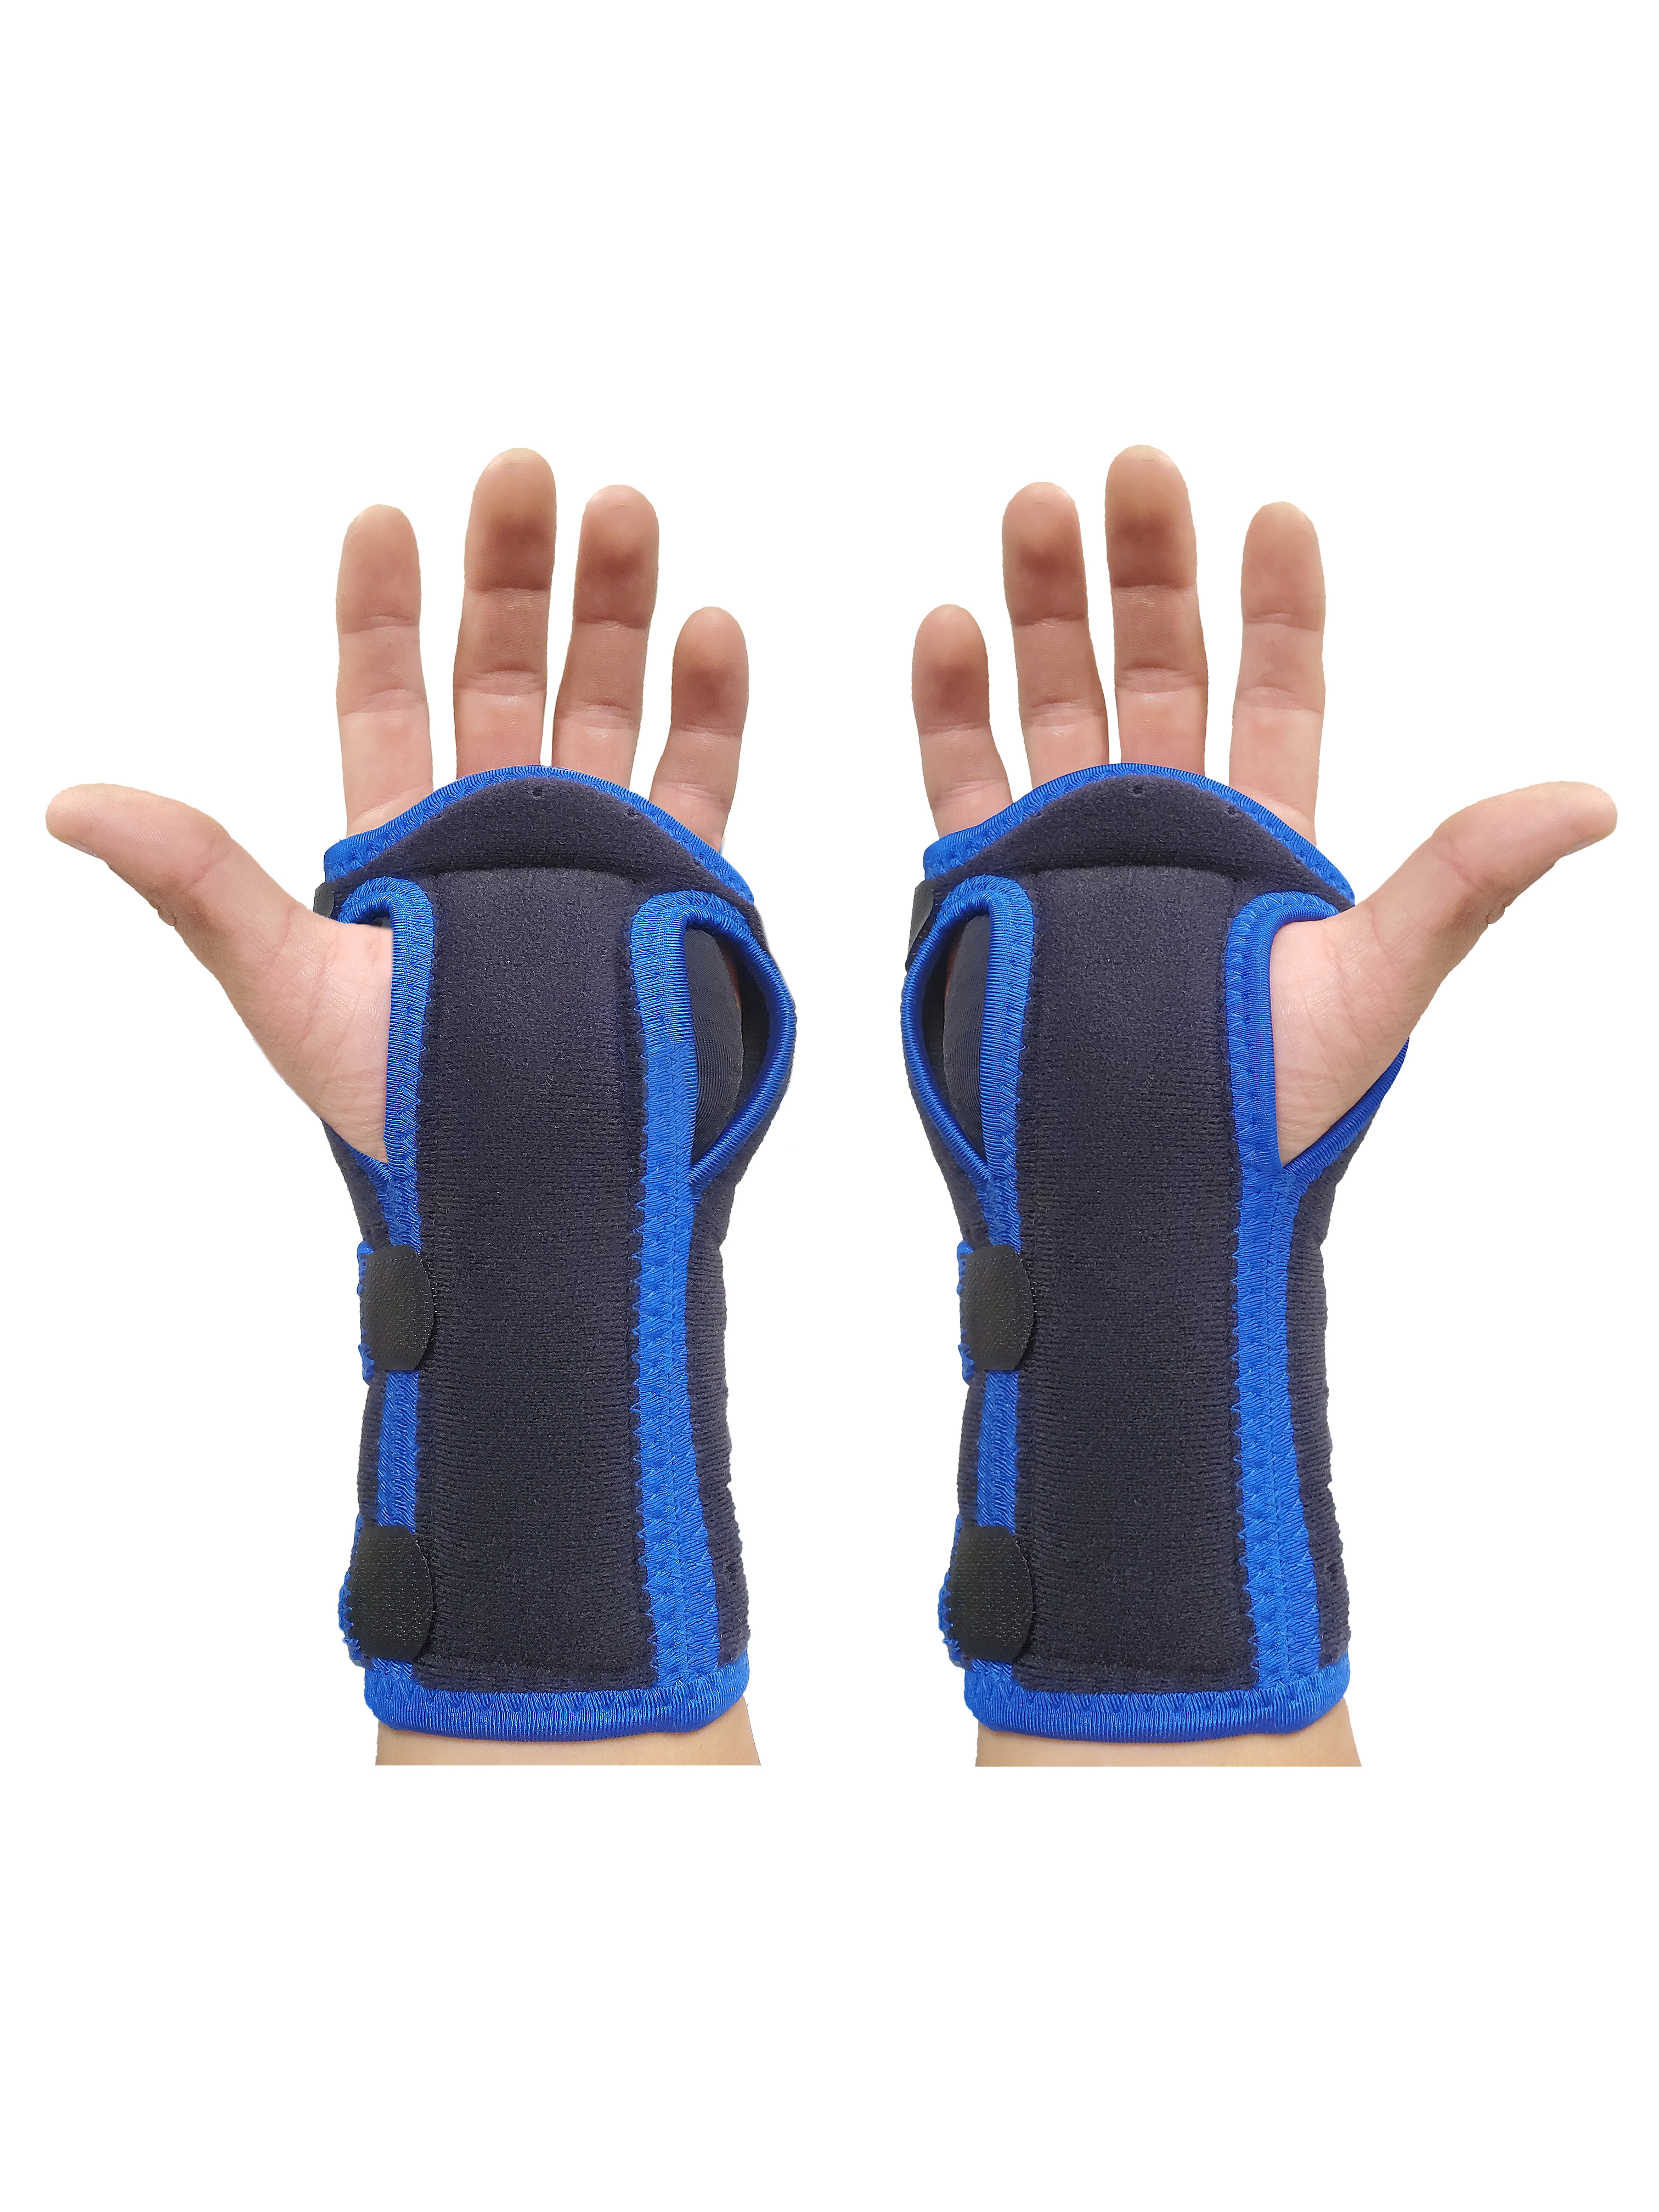 Carpal Tunnel Both Hands